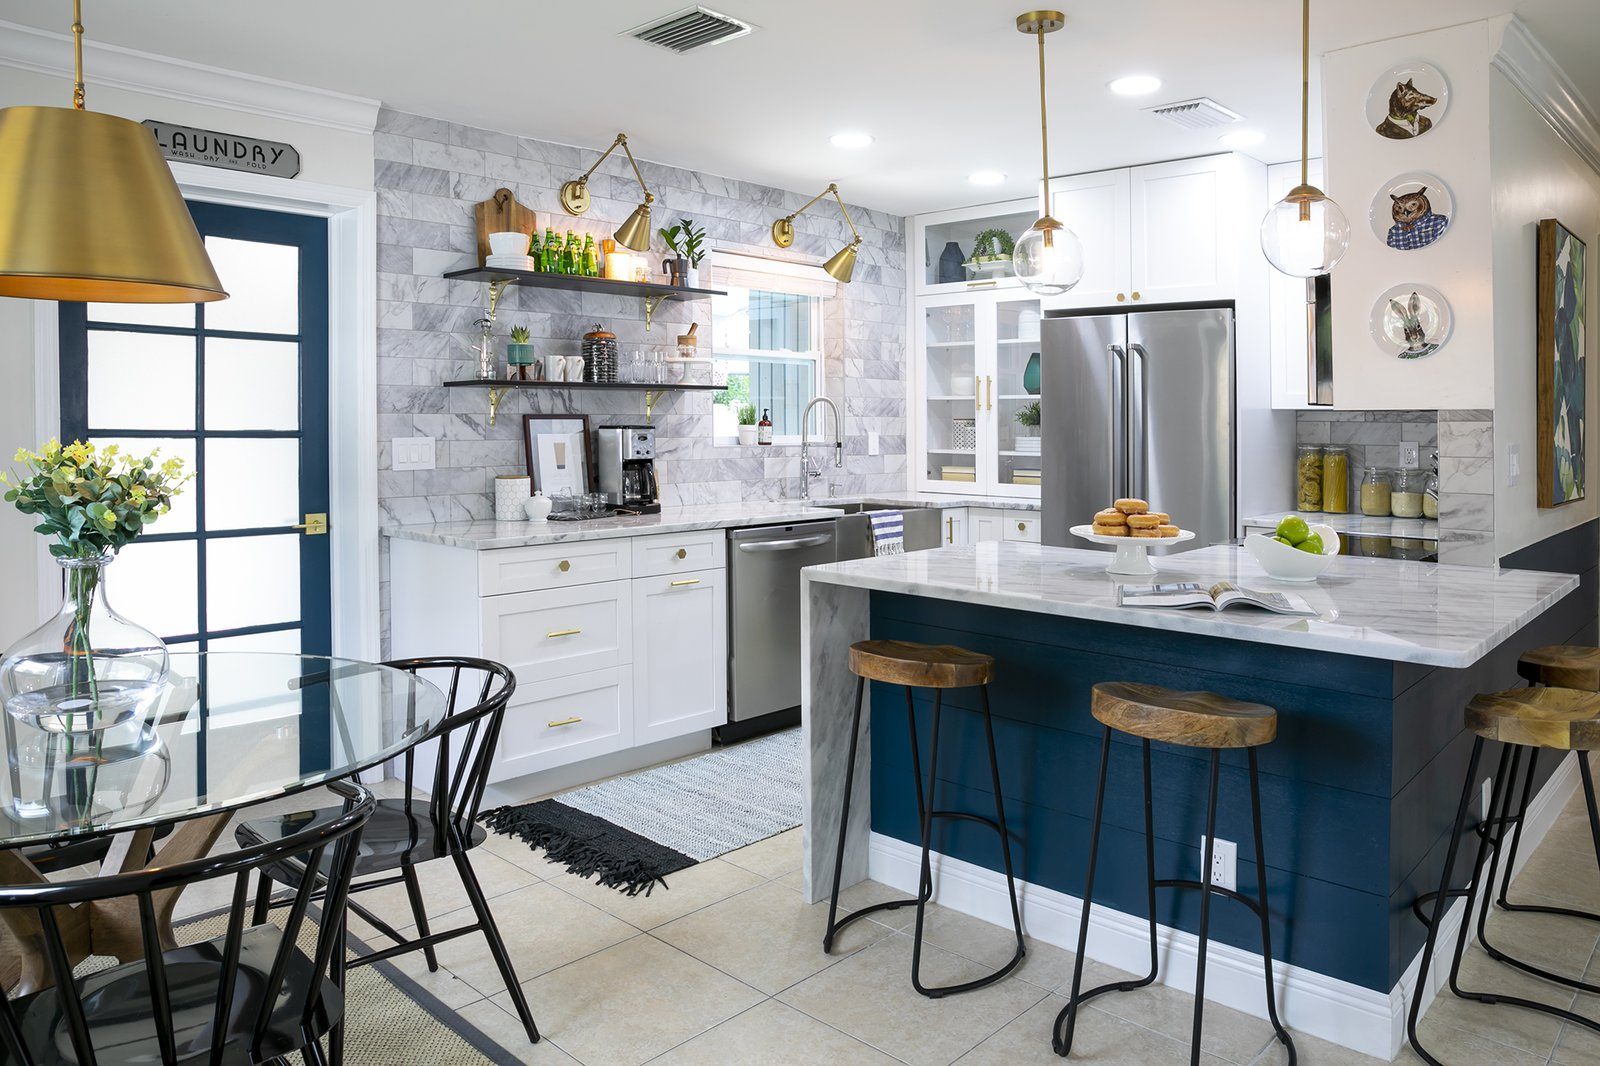 Budget Breakdown: An '80s Kitchen Gets a Fresh Look For $42K